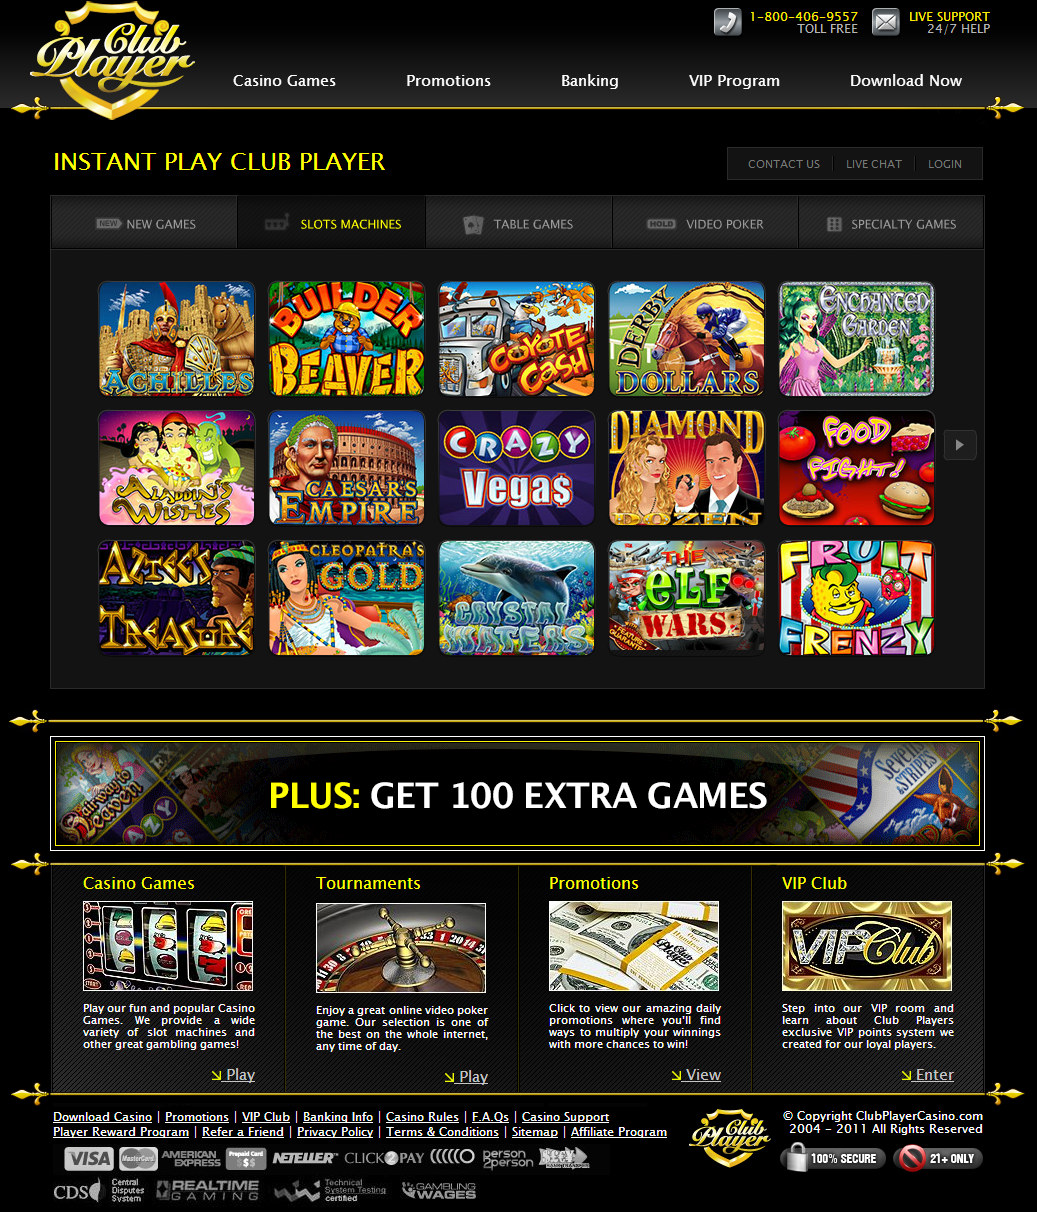 Club Player Casino 100 Free